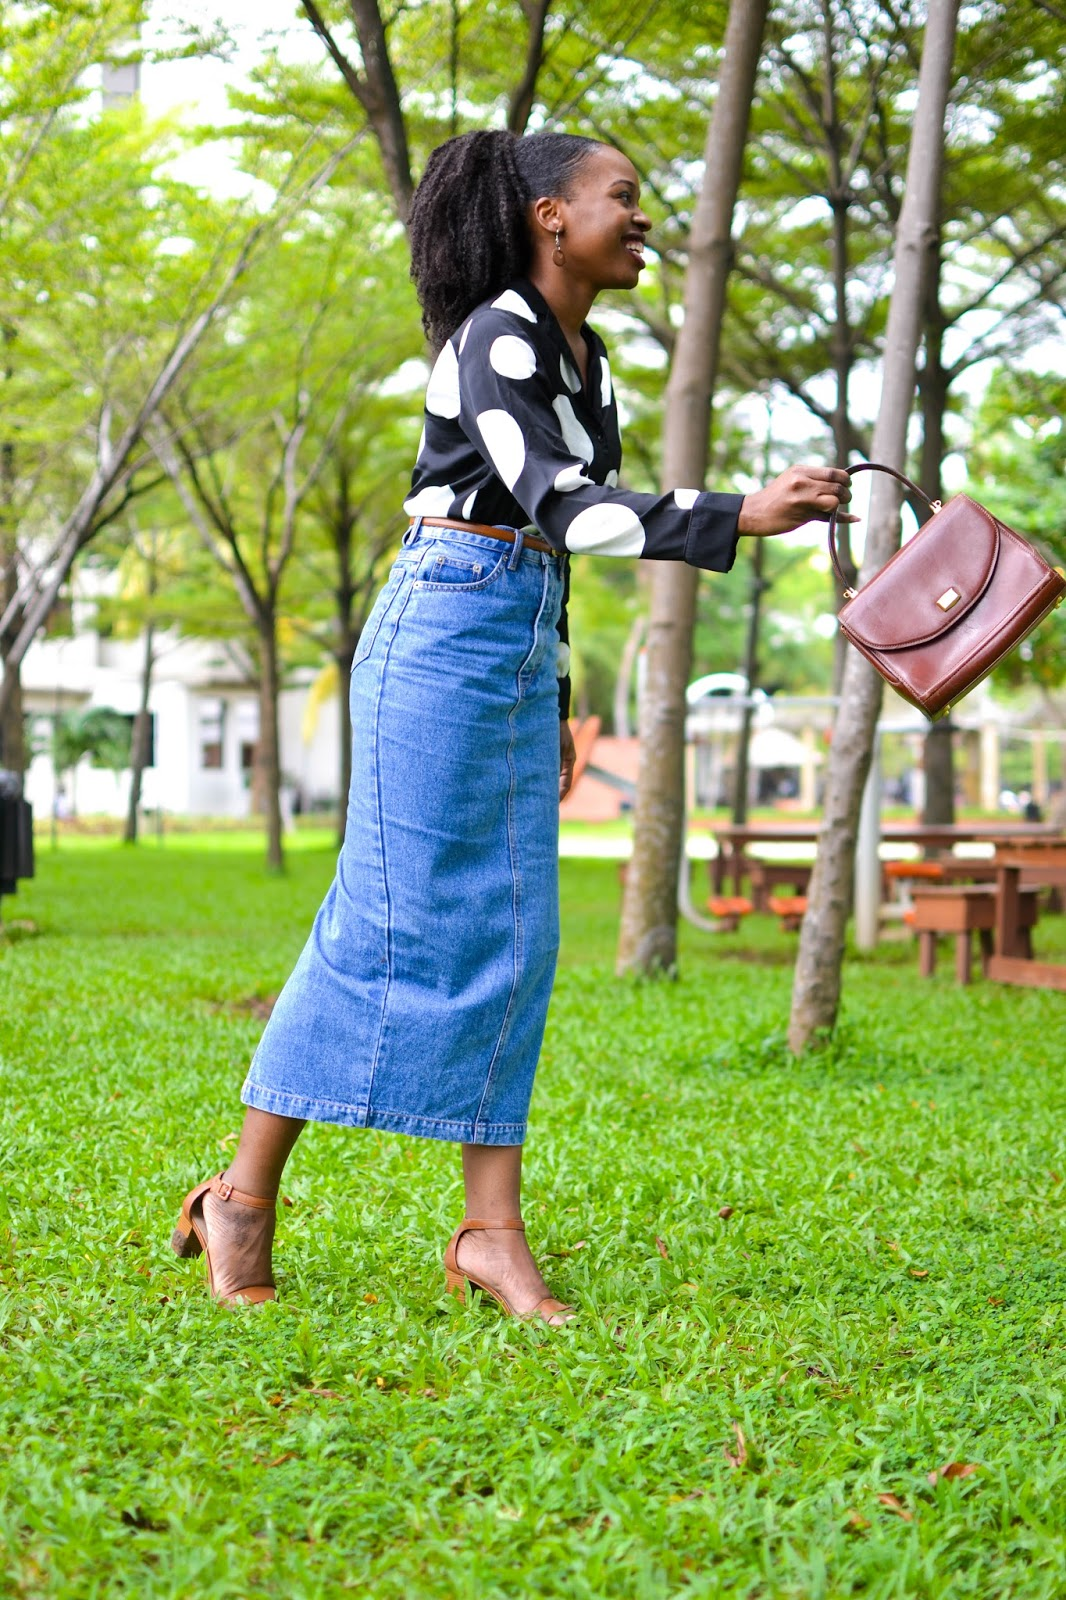 Black Fashion Blogger in Denim Midi Skirt & Black Polka Dot Shirt